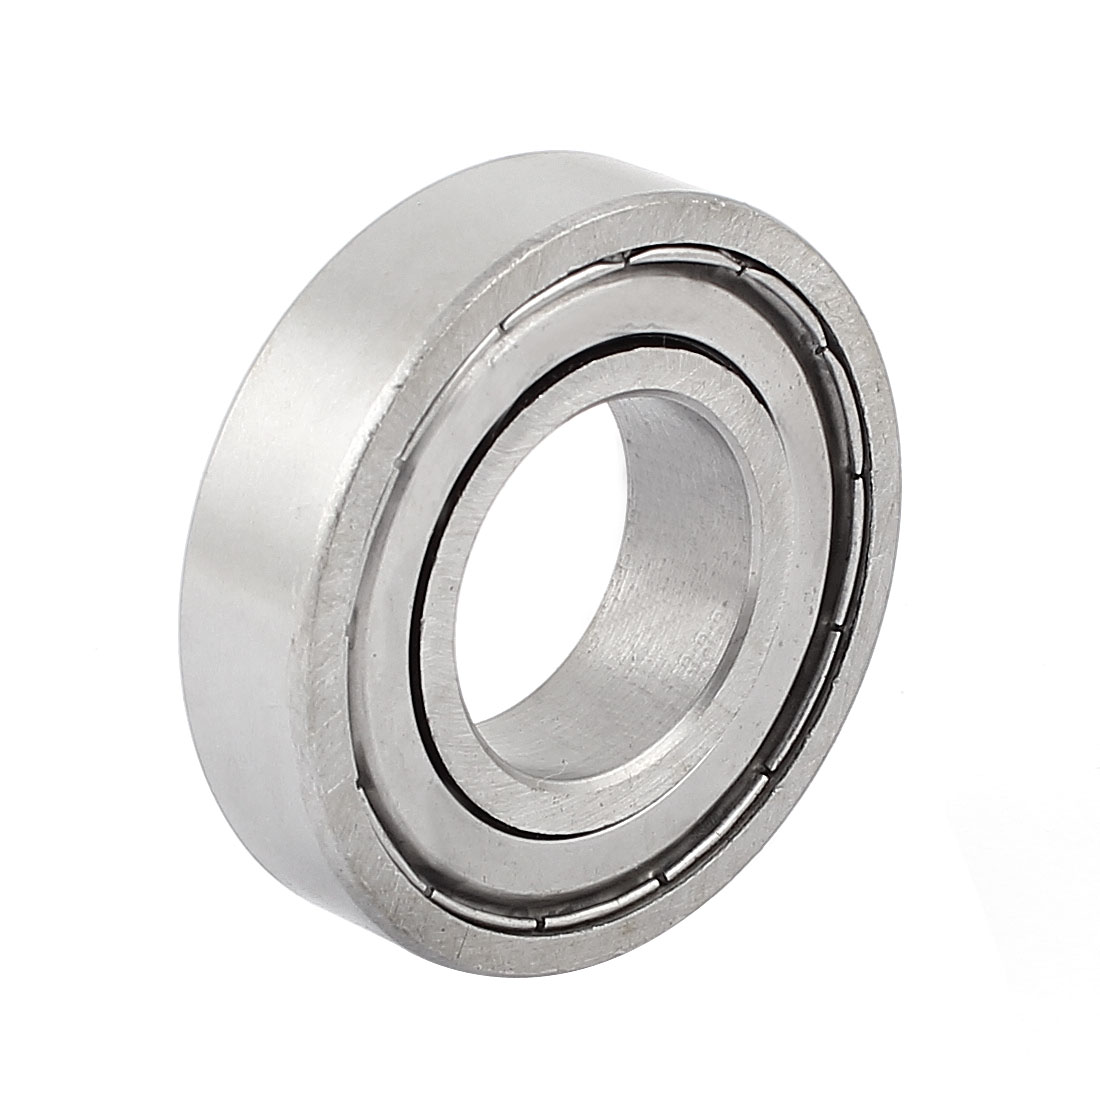 Metal 62mm x 30mm x 16mm Rod Cam Needle Roller Groove Ball Bearing